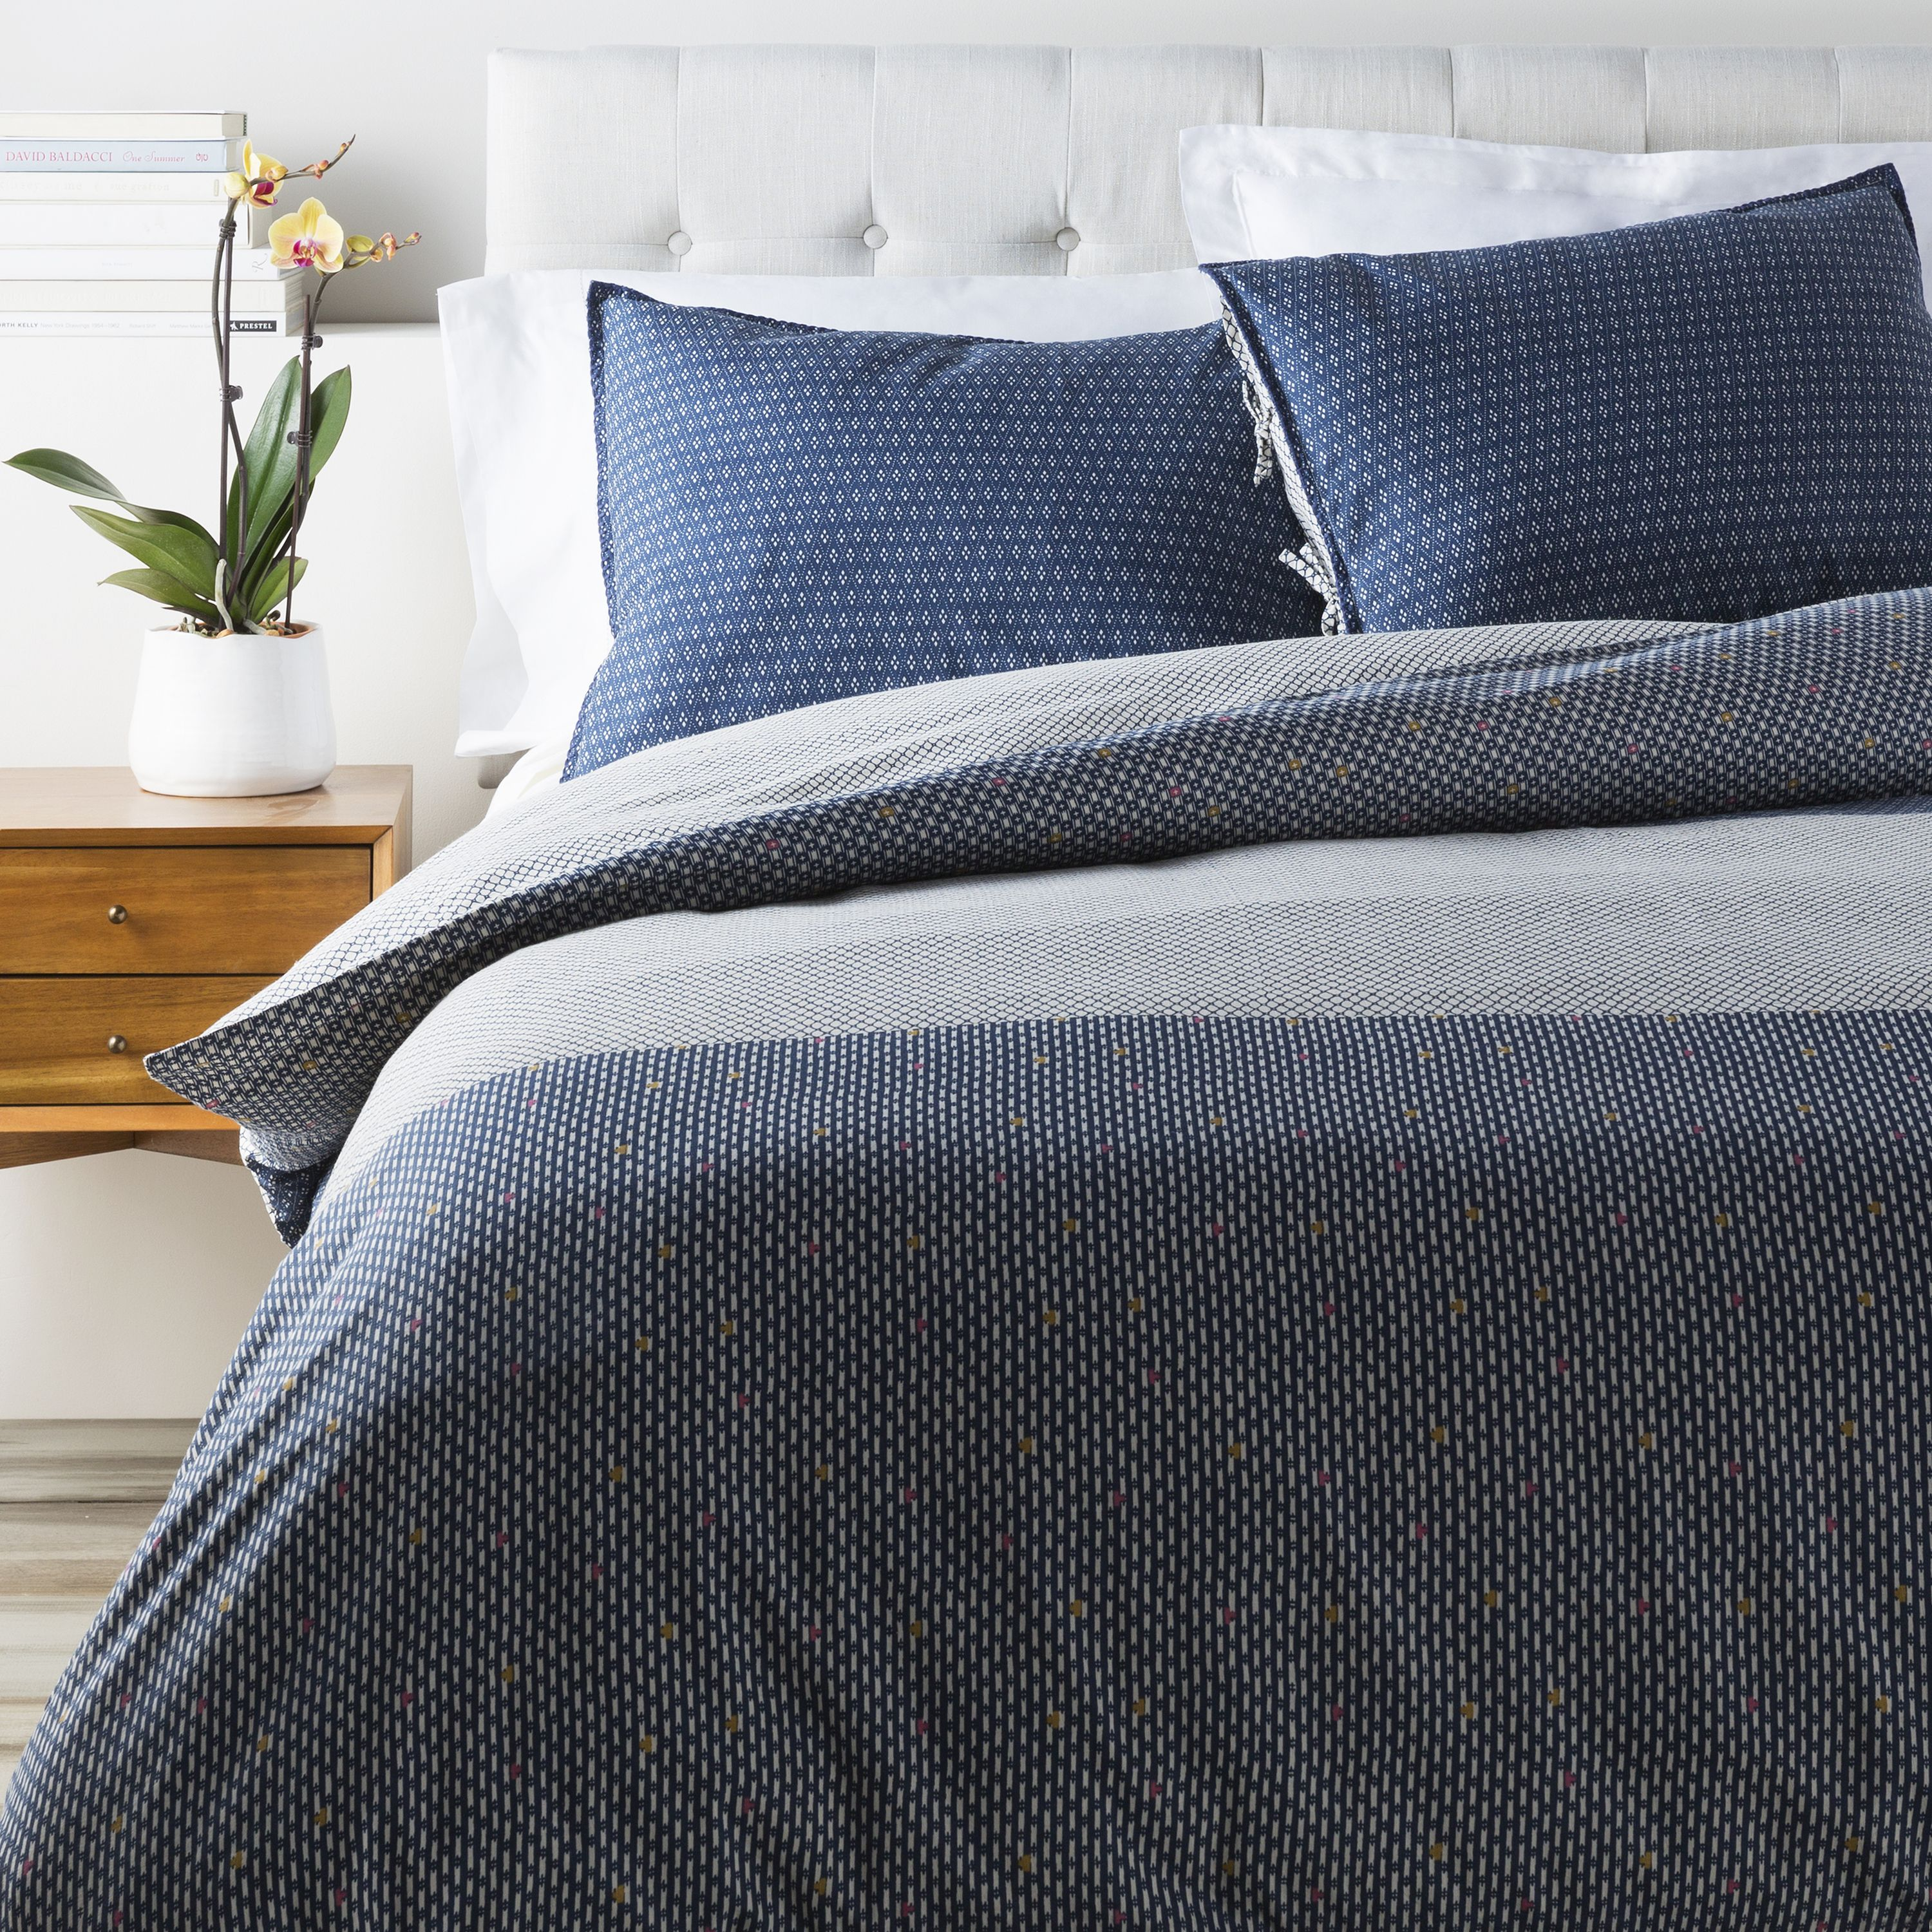 Masculine Or Feminine Our Markus Bedding Has A Textured And Color